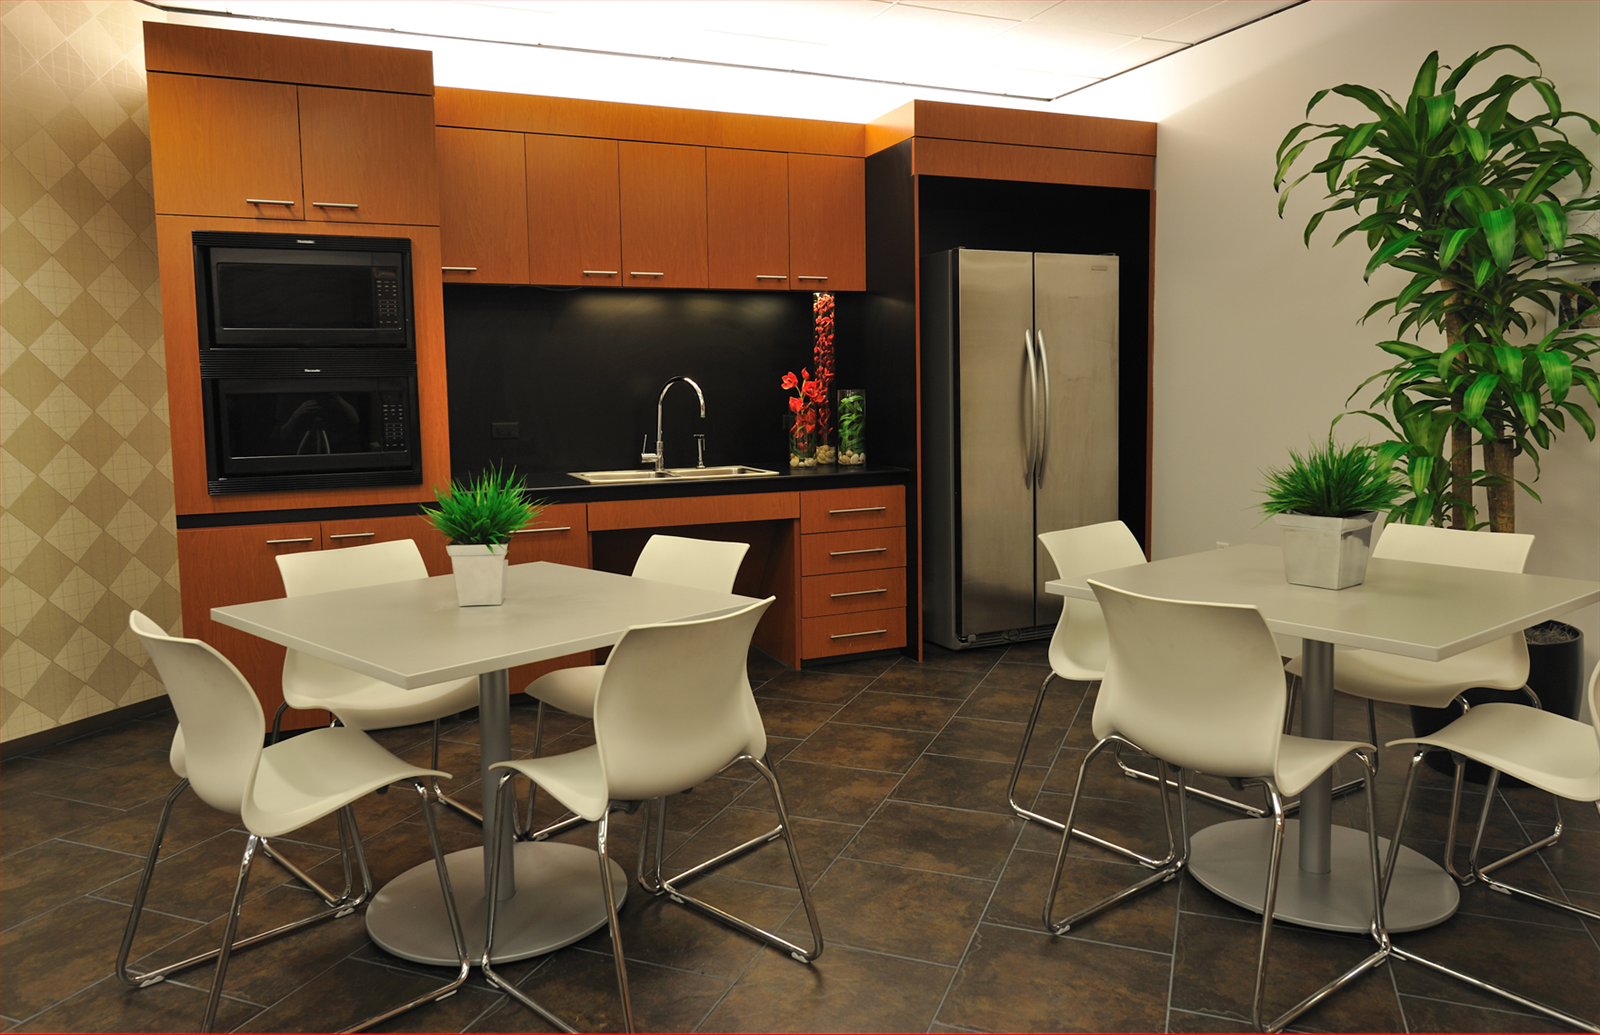 Office break room tf kitchen idea for Office lunch room design ideas